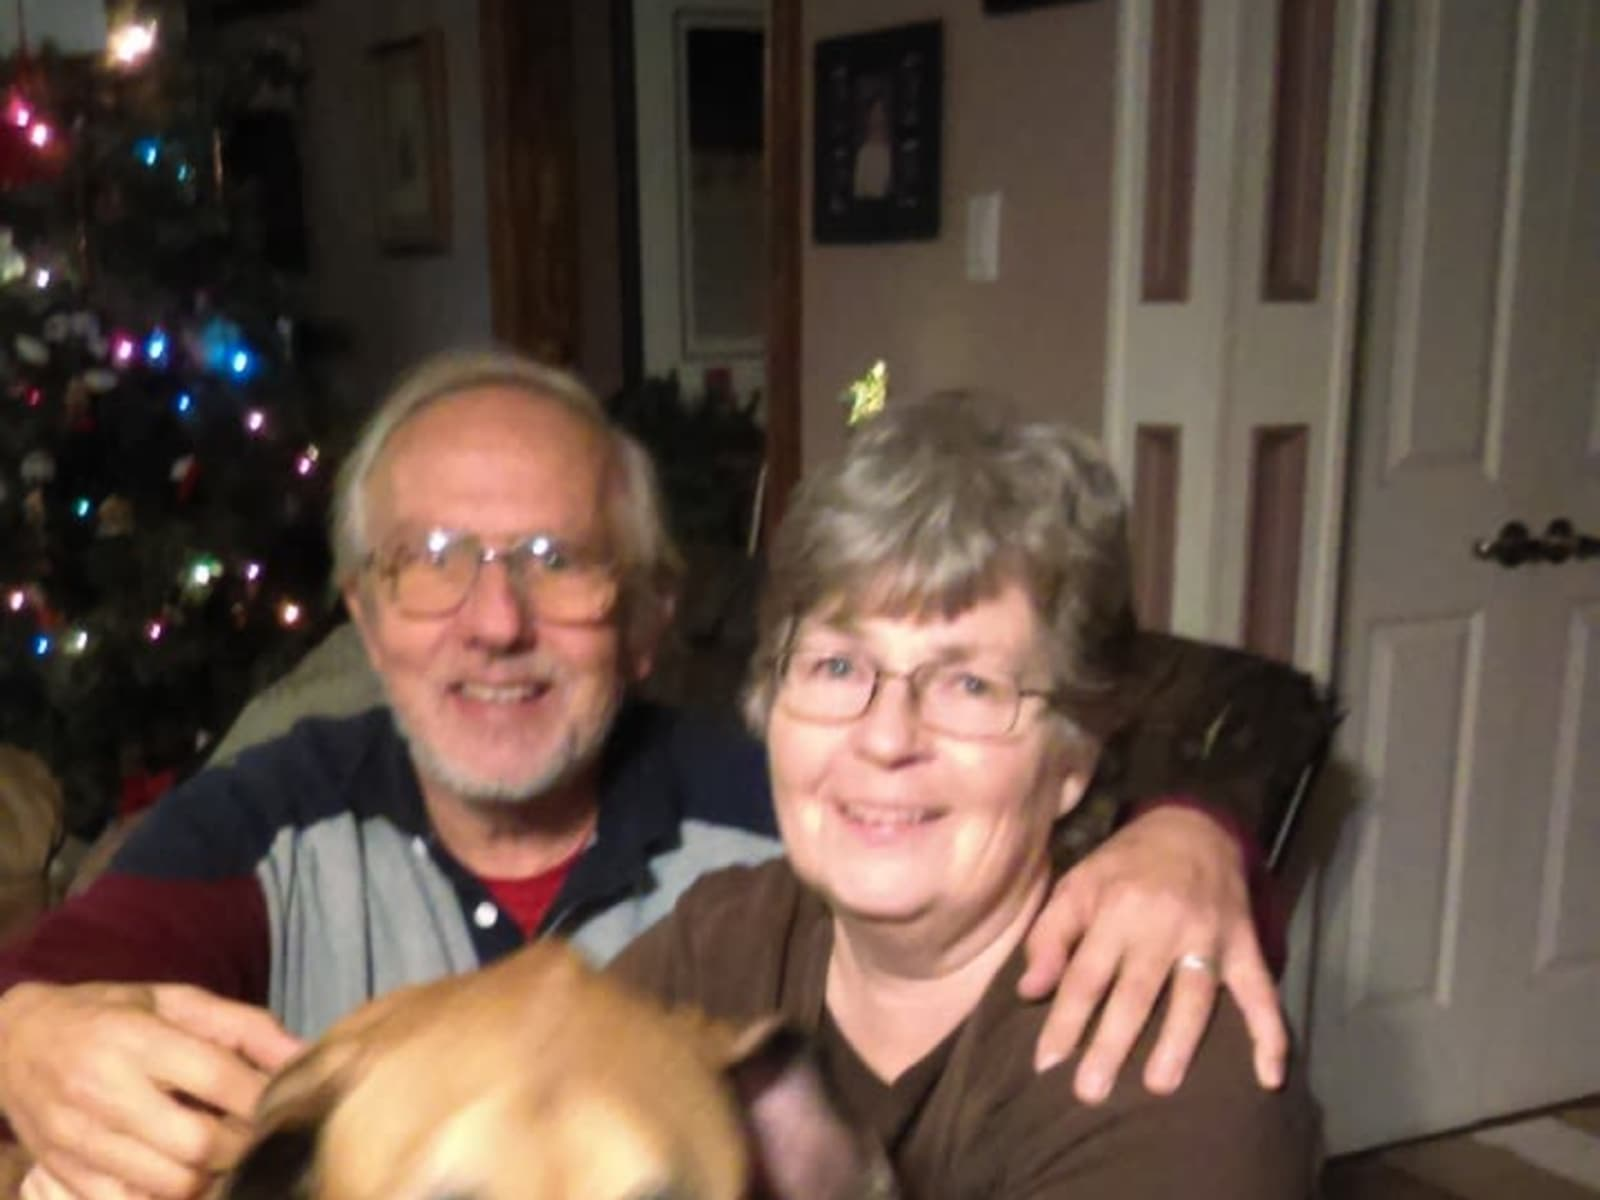 Barb & Russel from Peterborough, Ontario, Canada